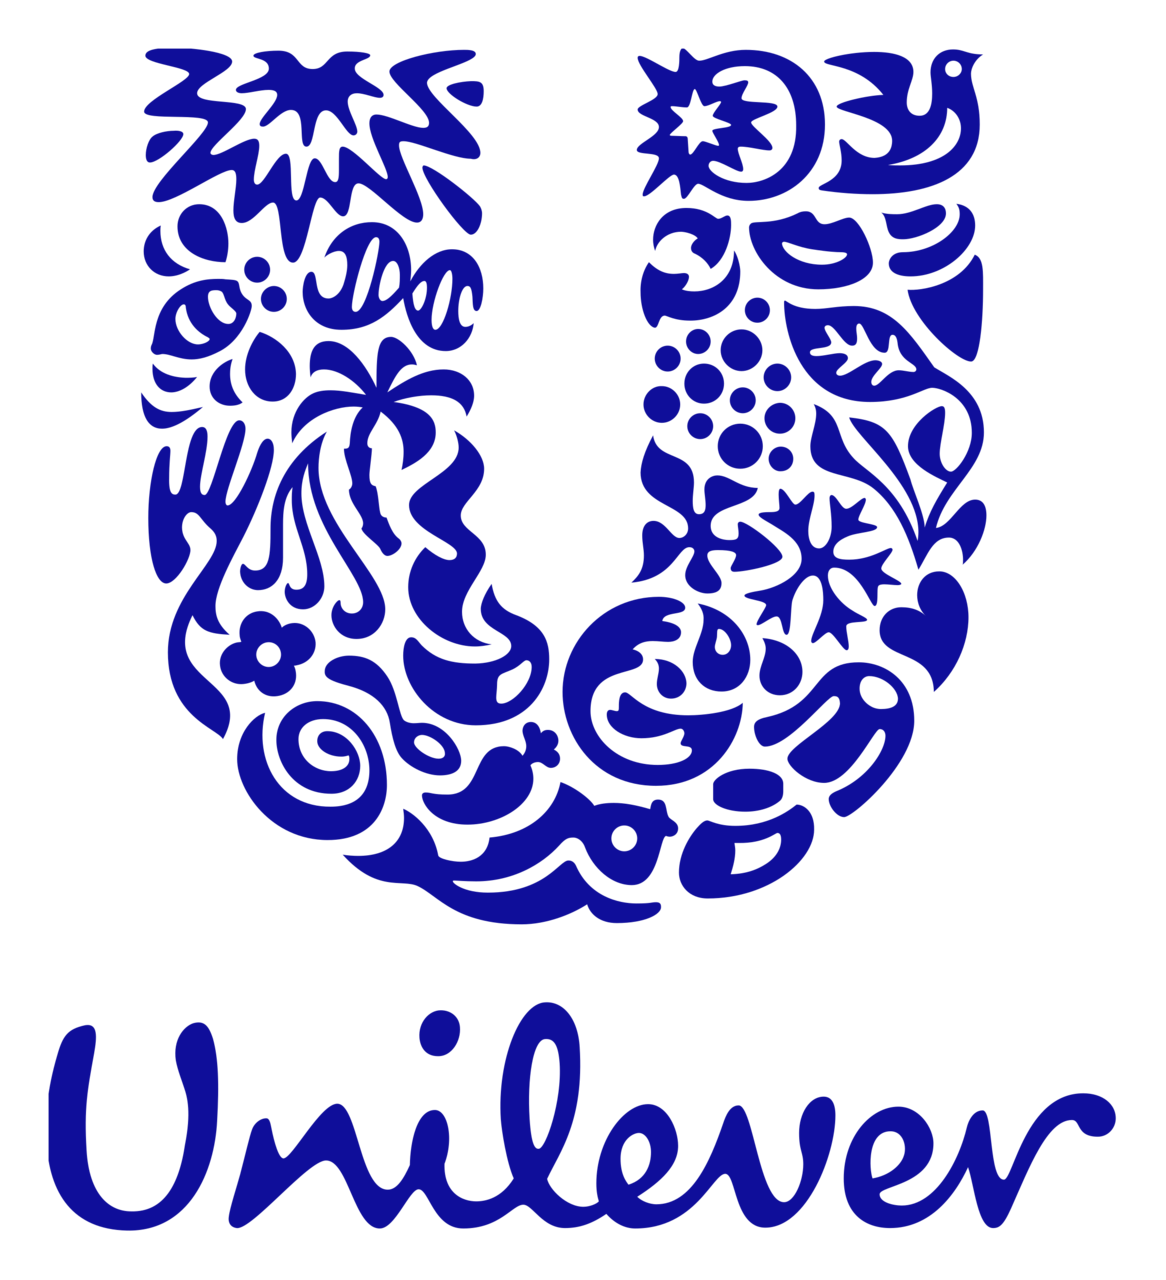 Unilever logo with big decorative U above made from various illustrations